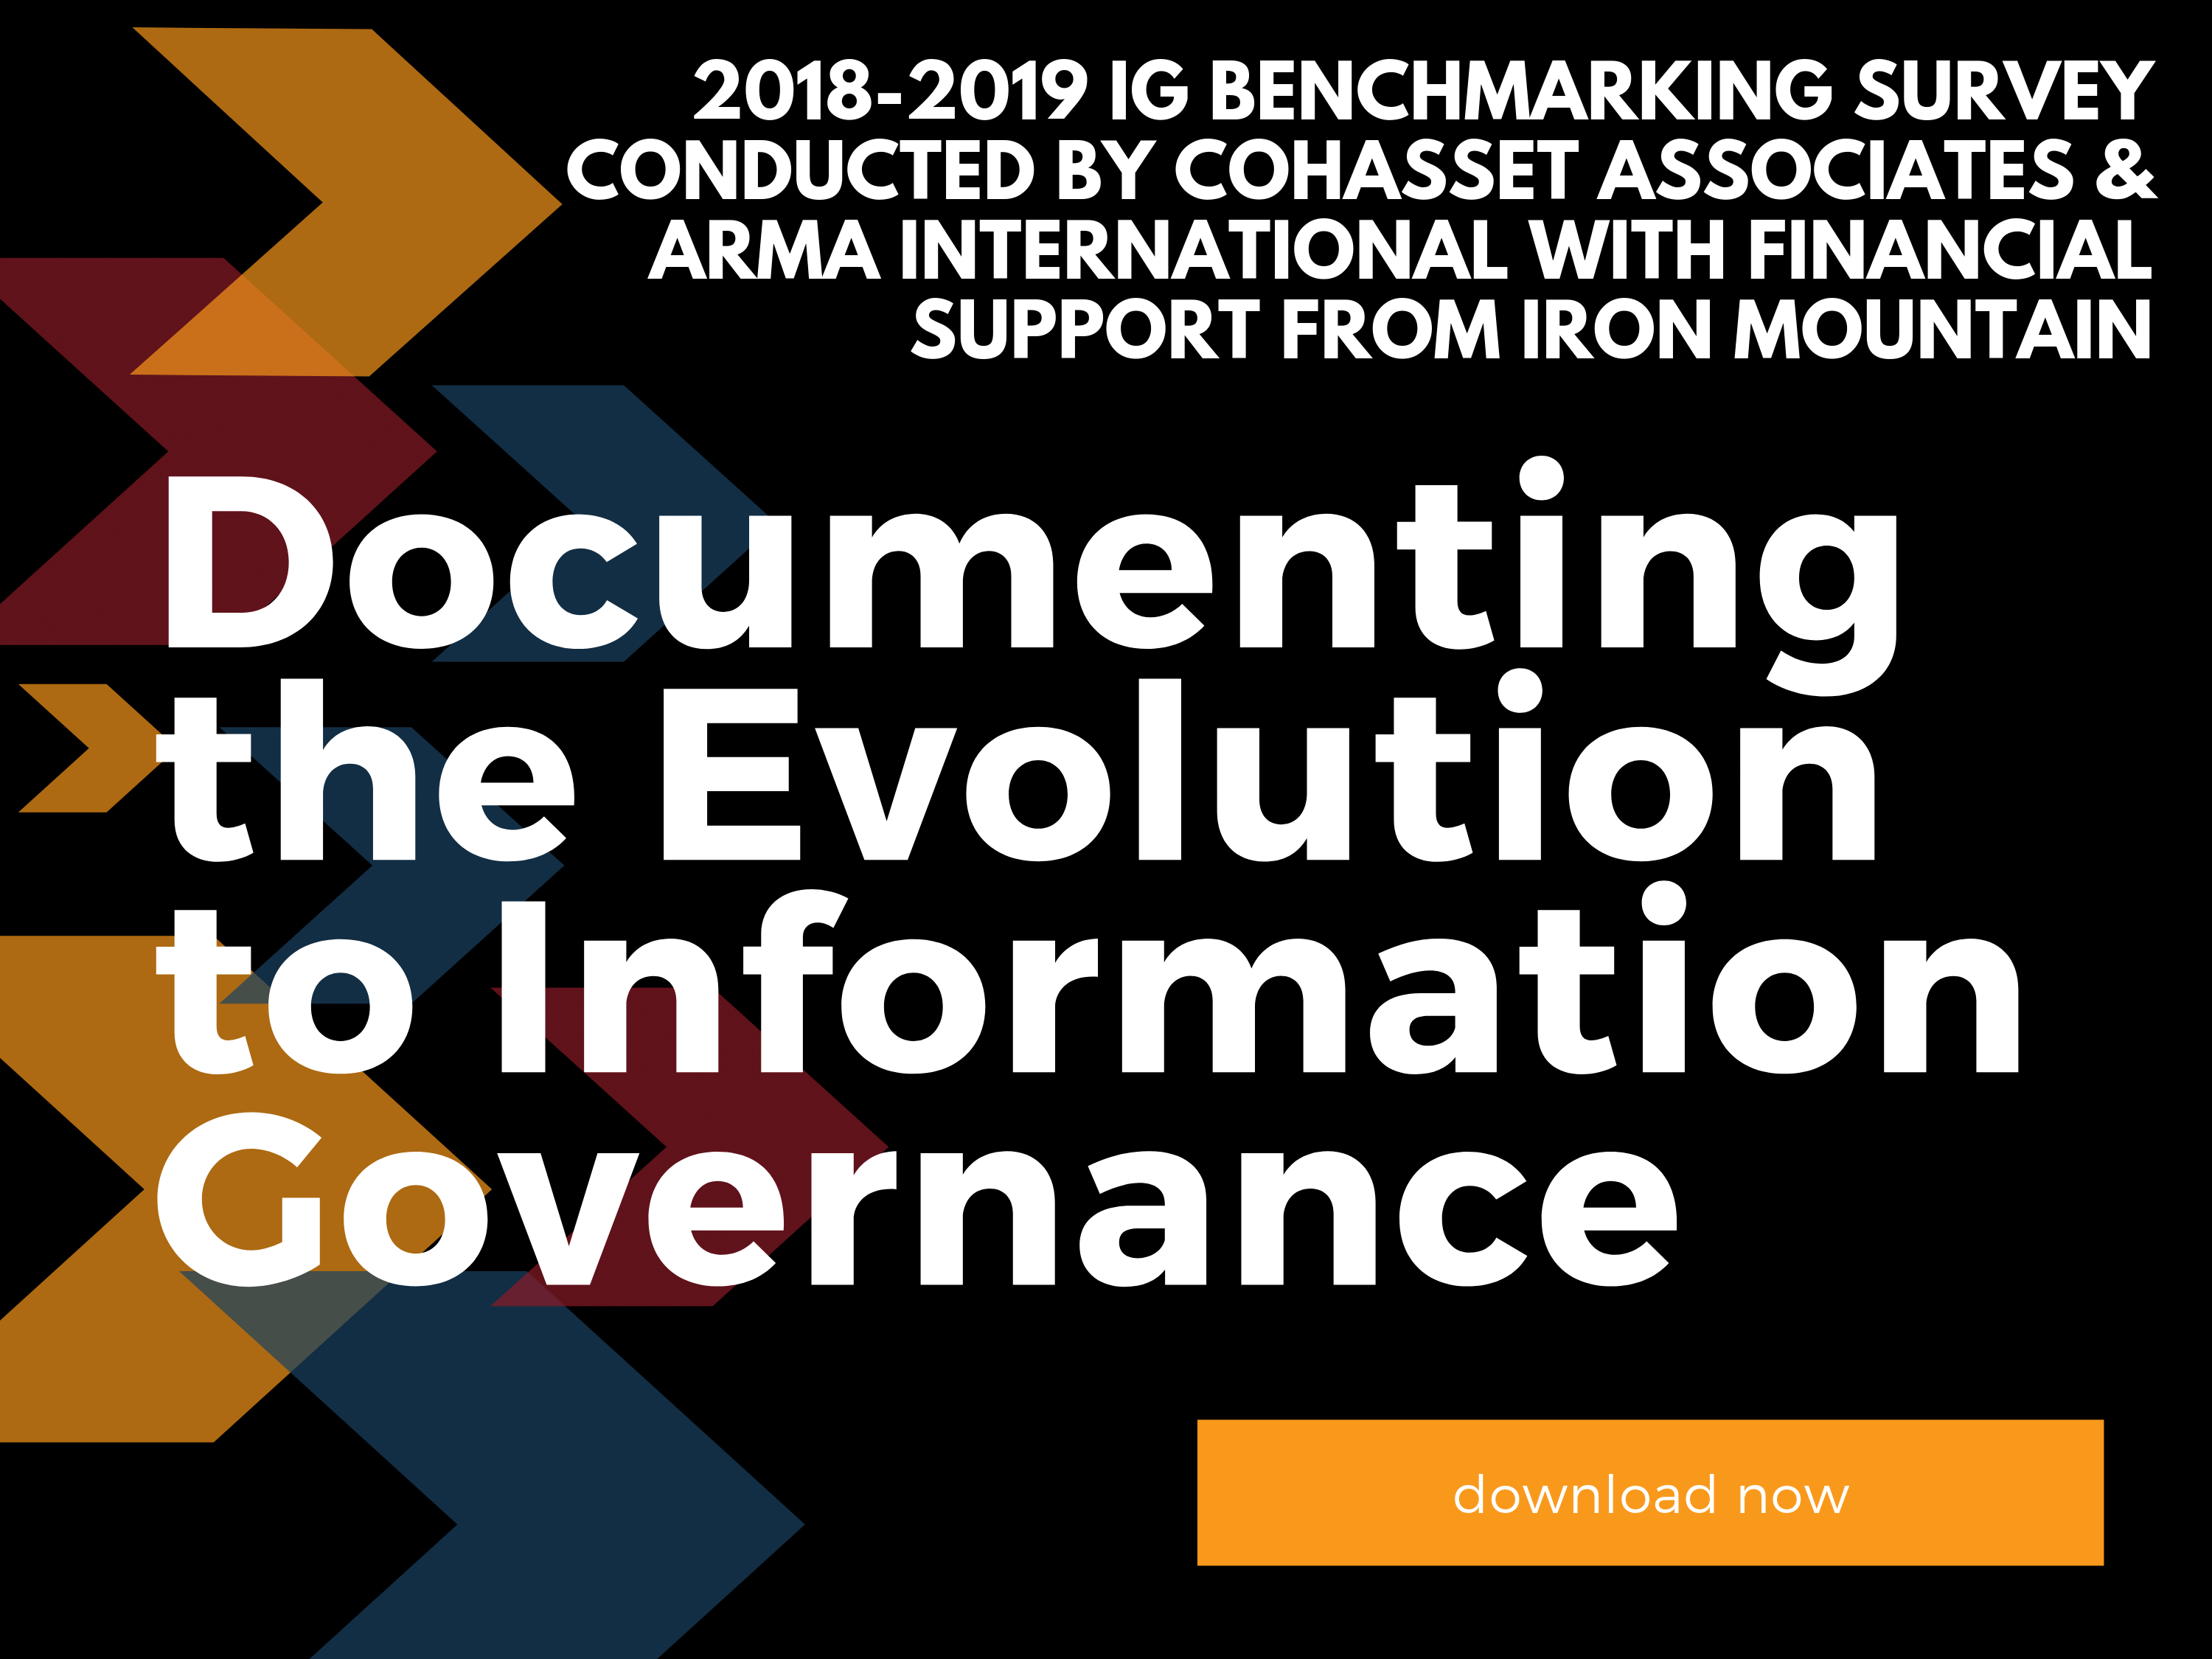 Documenting the Evolution to Information Governance